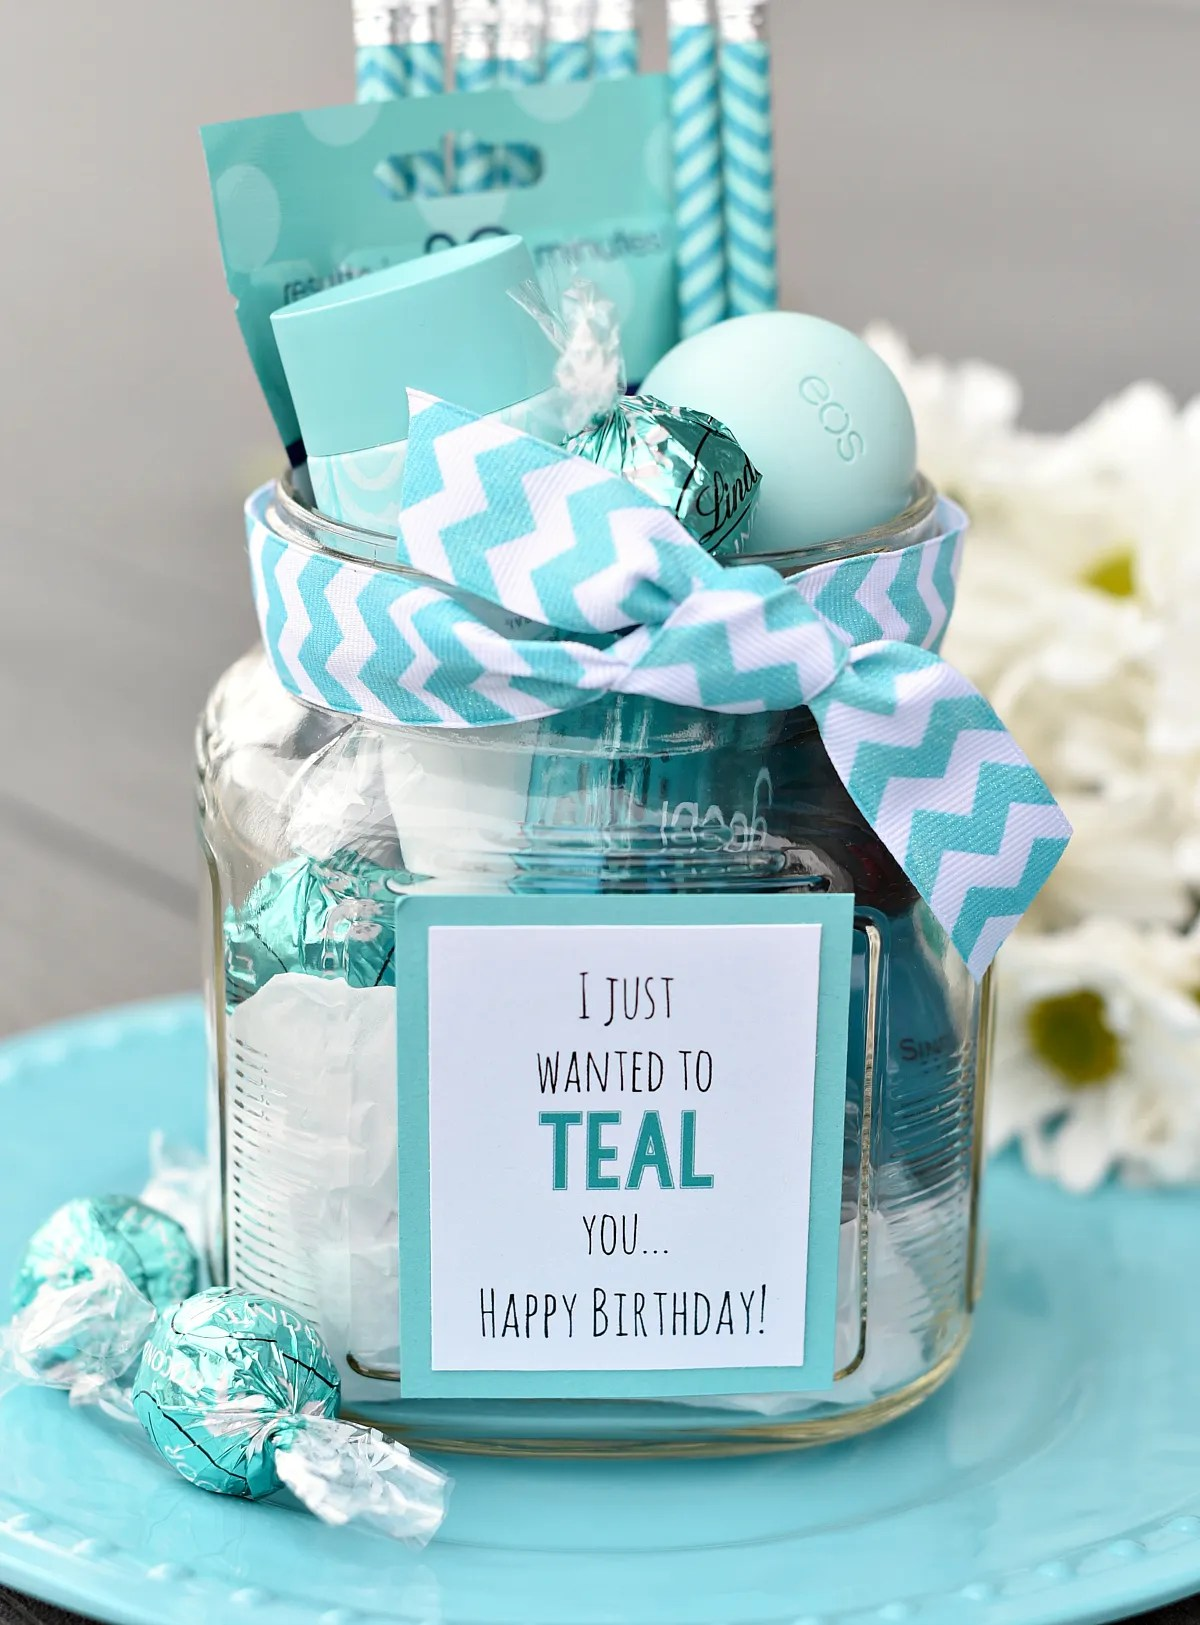 Teal Birthday Gift Idea for Friends-This cute gift is so easy to put together and a birthday gift your friend will love! Fill a basket with teal colored thing and you've got the best birthday gift idea! #birthdaygifts #birthdaygiftidea #giftsforfriends #giftbasket